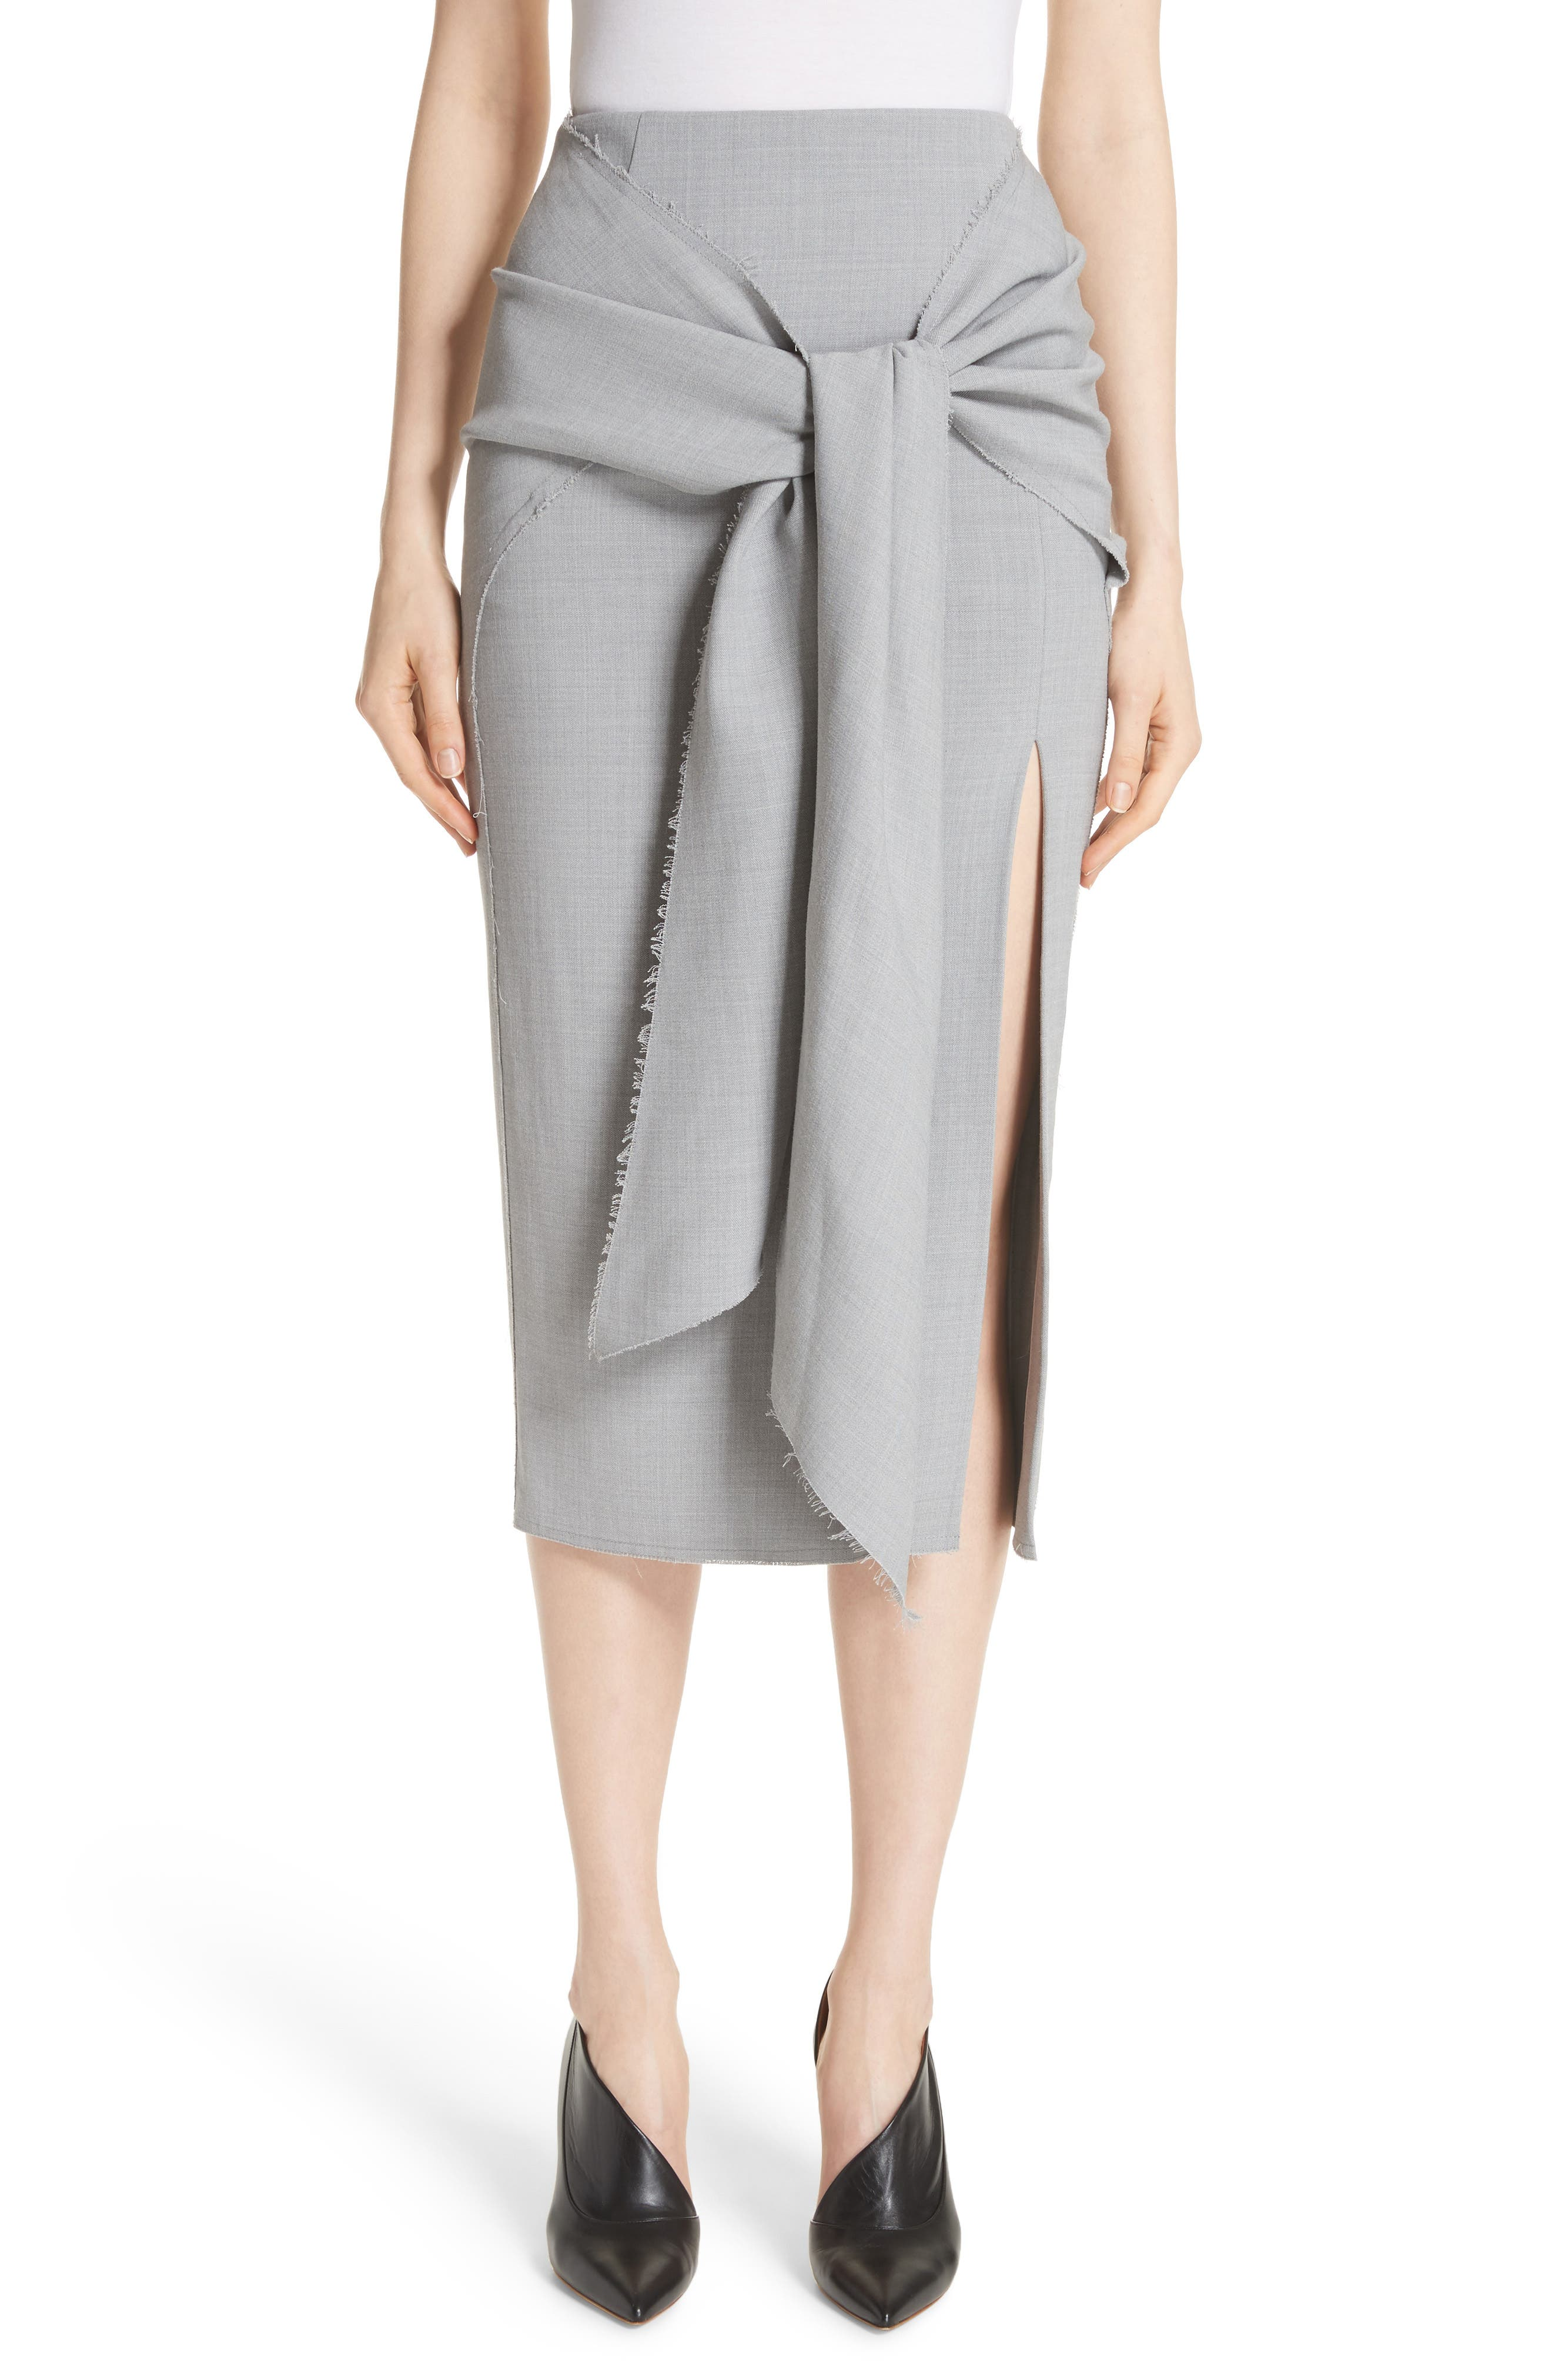 Jason Wu Raw Hem Tie Front Skirt,                         Main,                         color, 058